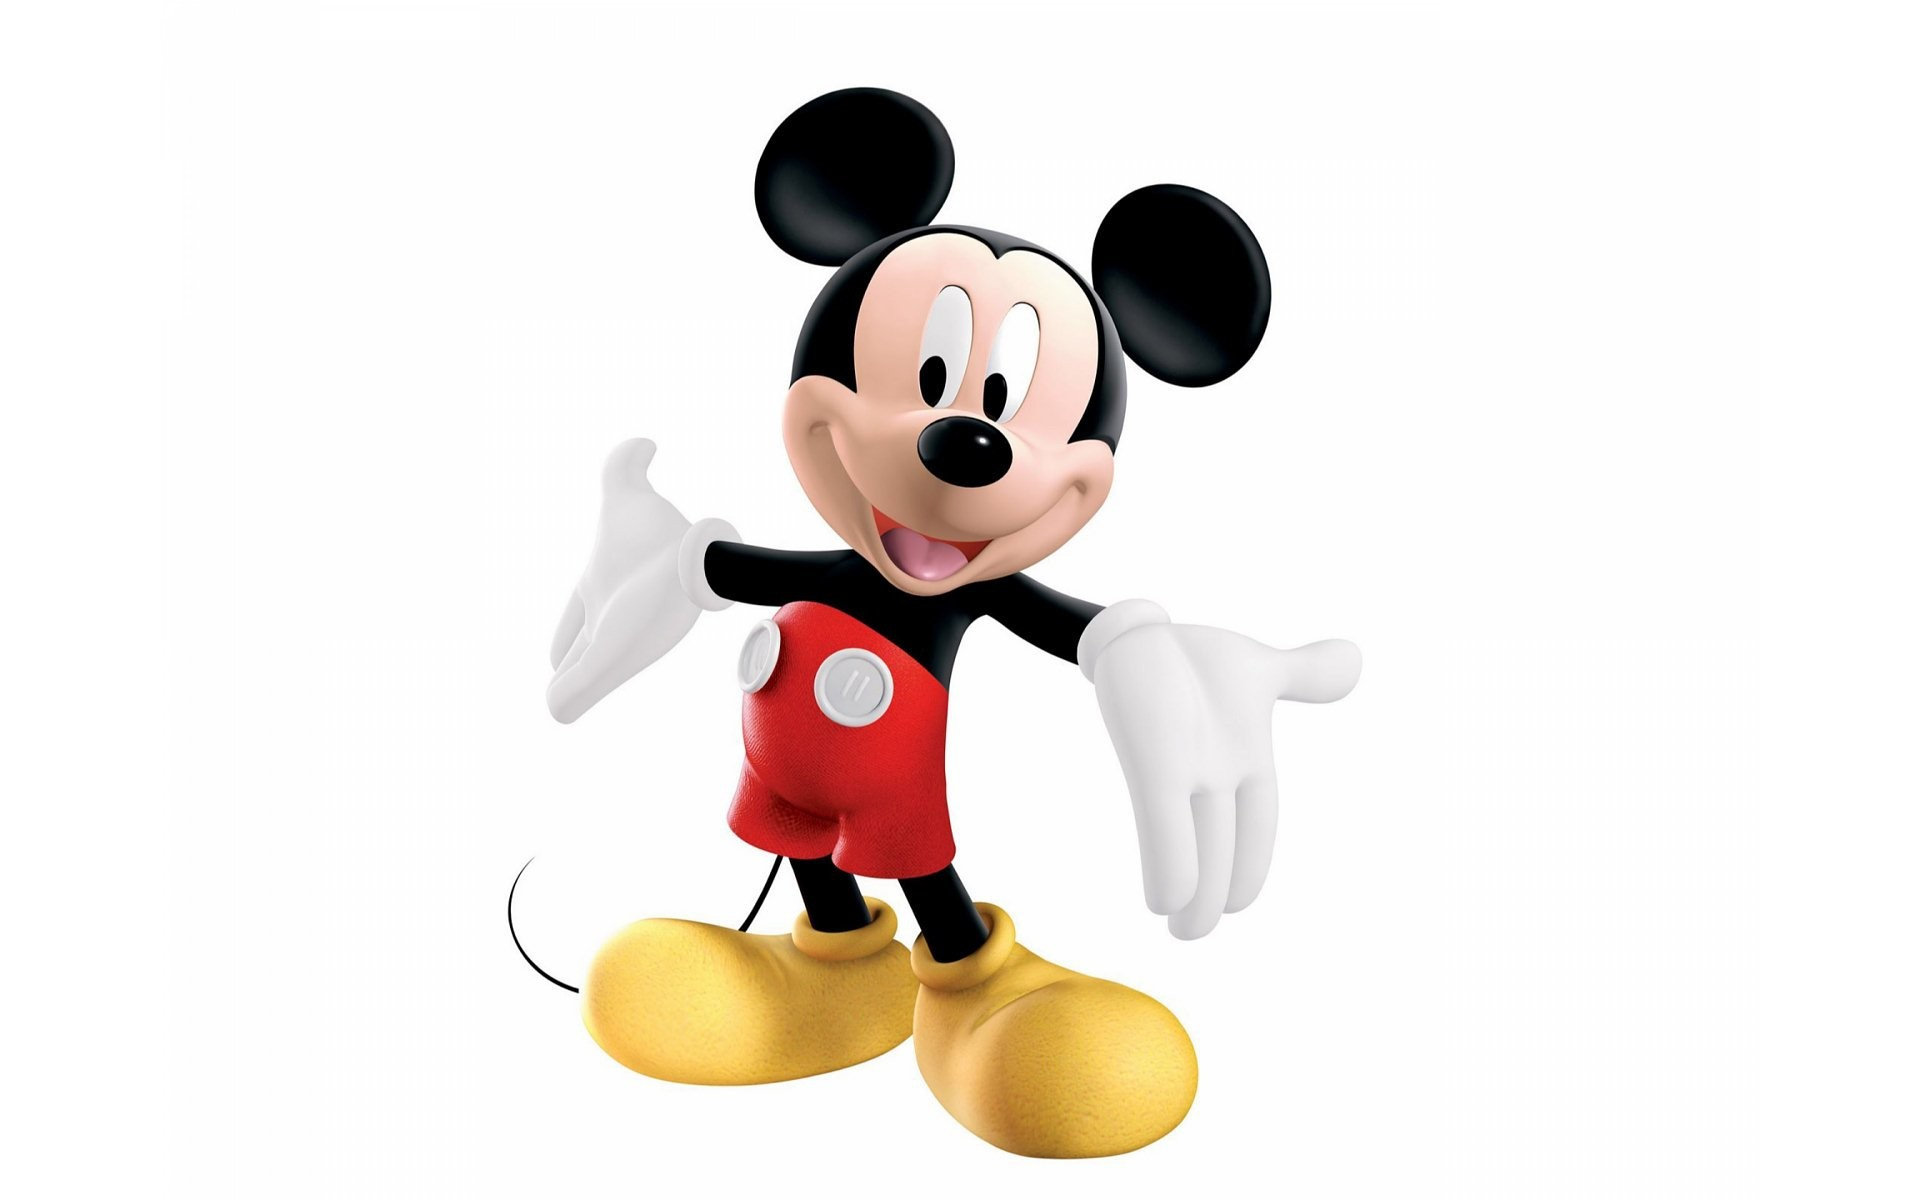 Mickey Mouse wallpaper ·① Download free stunning ...